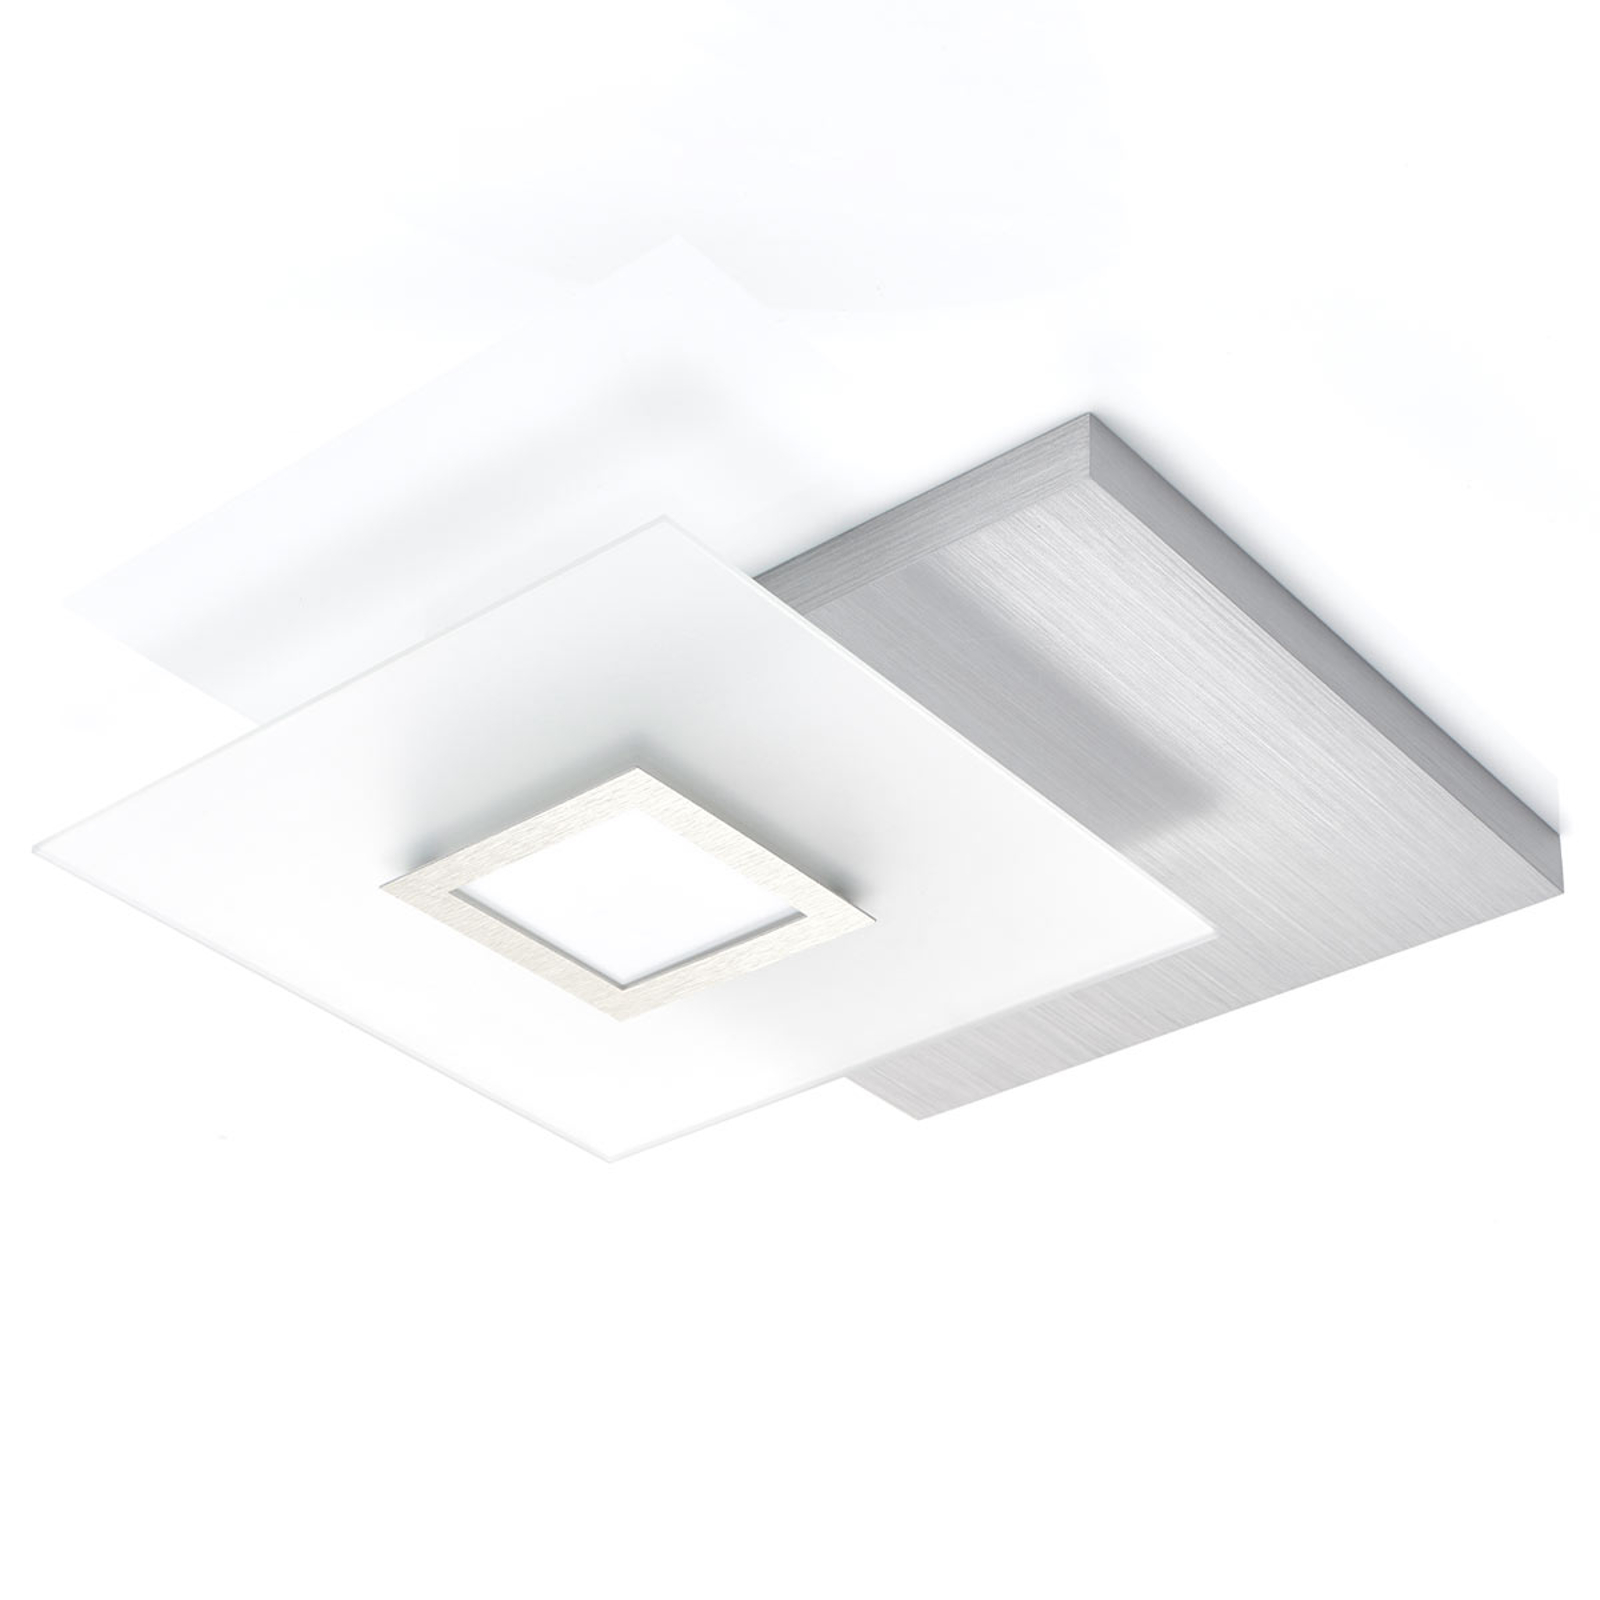 Vistosa plafoniera LED Flat, dimmerabile